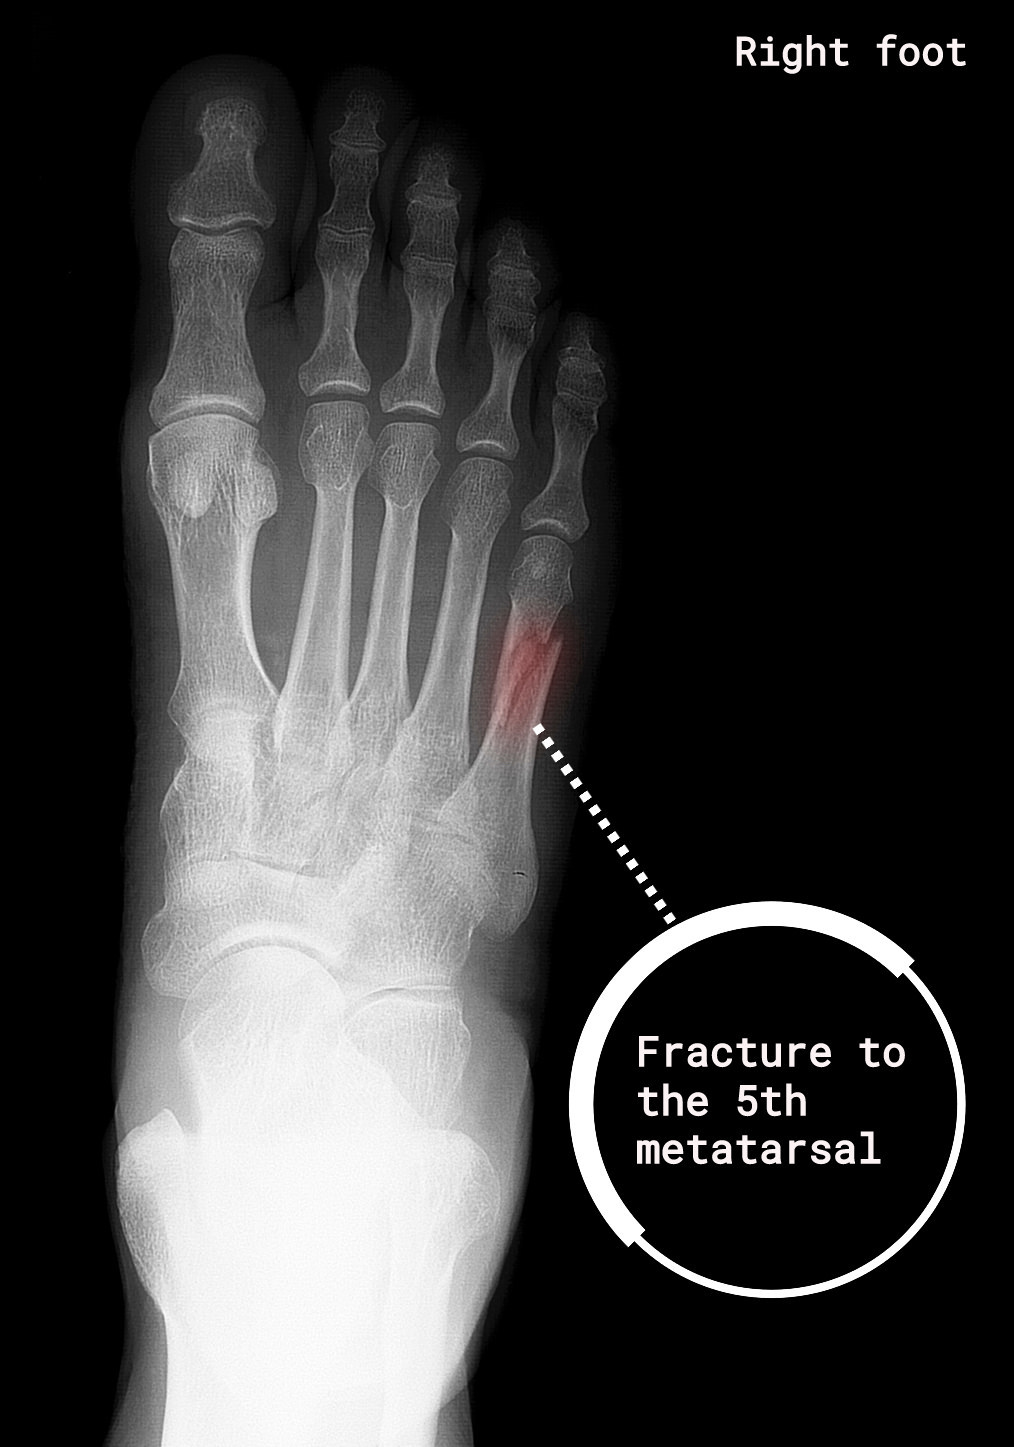 fracture_to_the_5th_metatarsal_football4football_injury_section